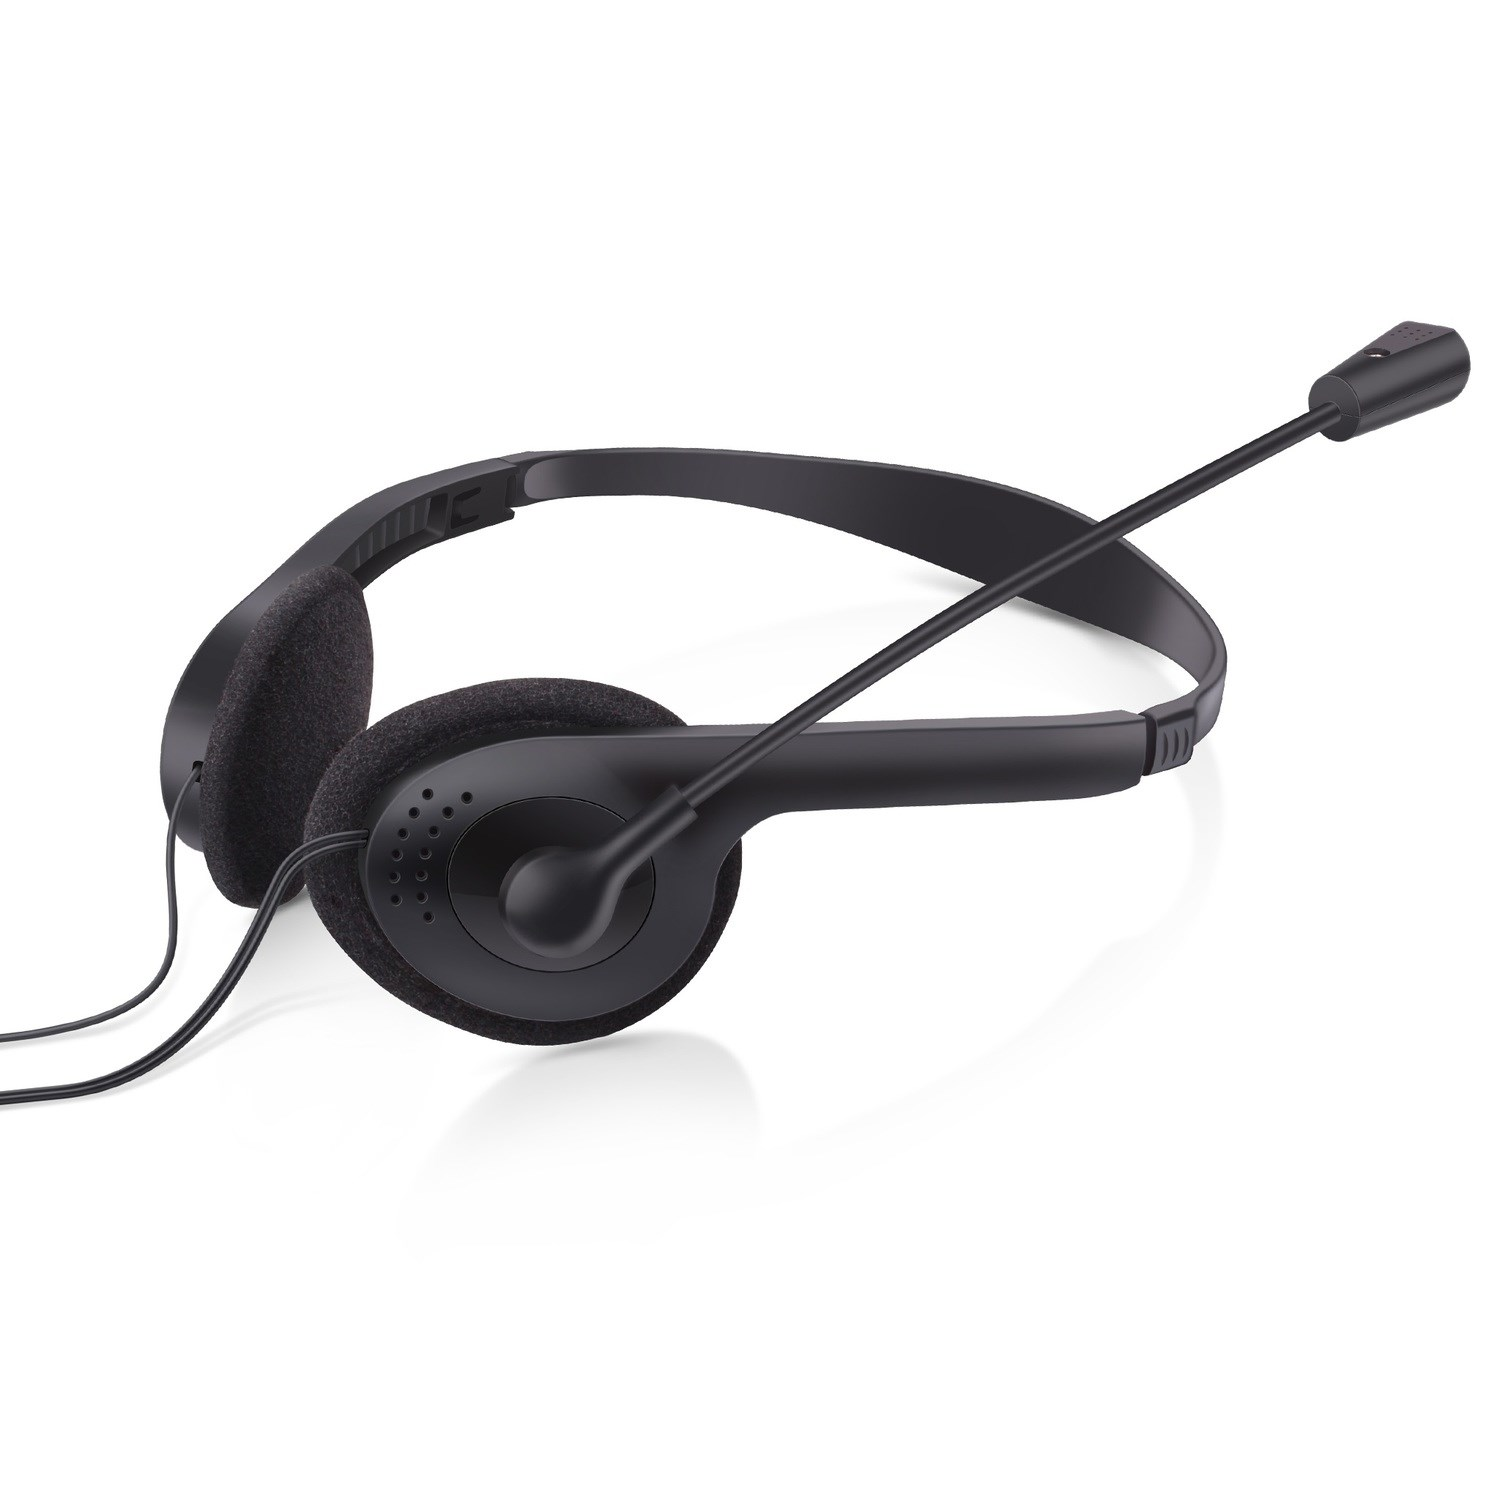 Sandberg Usb Headset With Microphone With 5 Year Warranty Laptops Direct